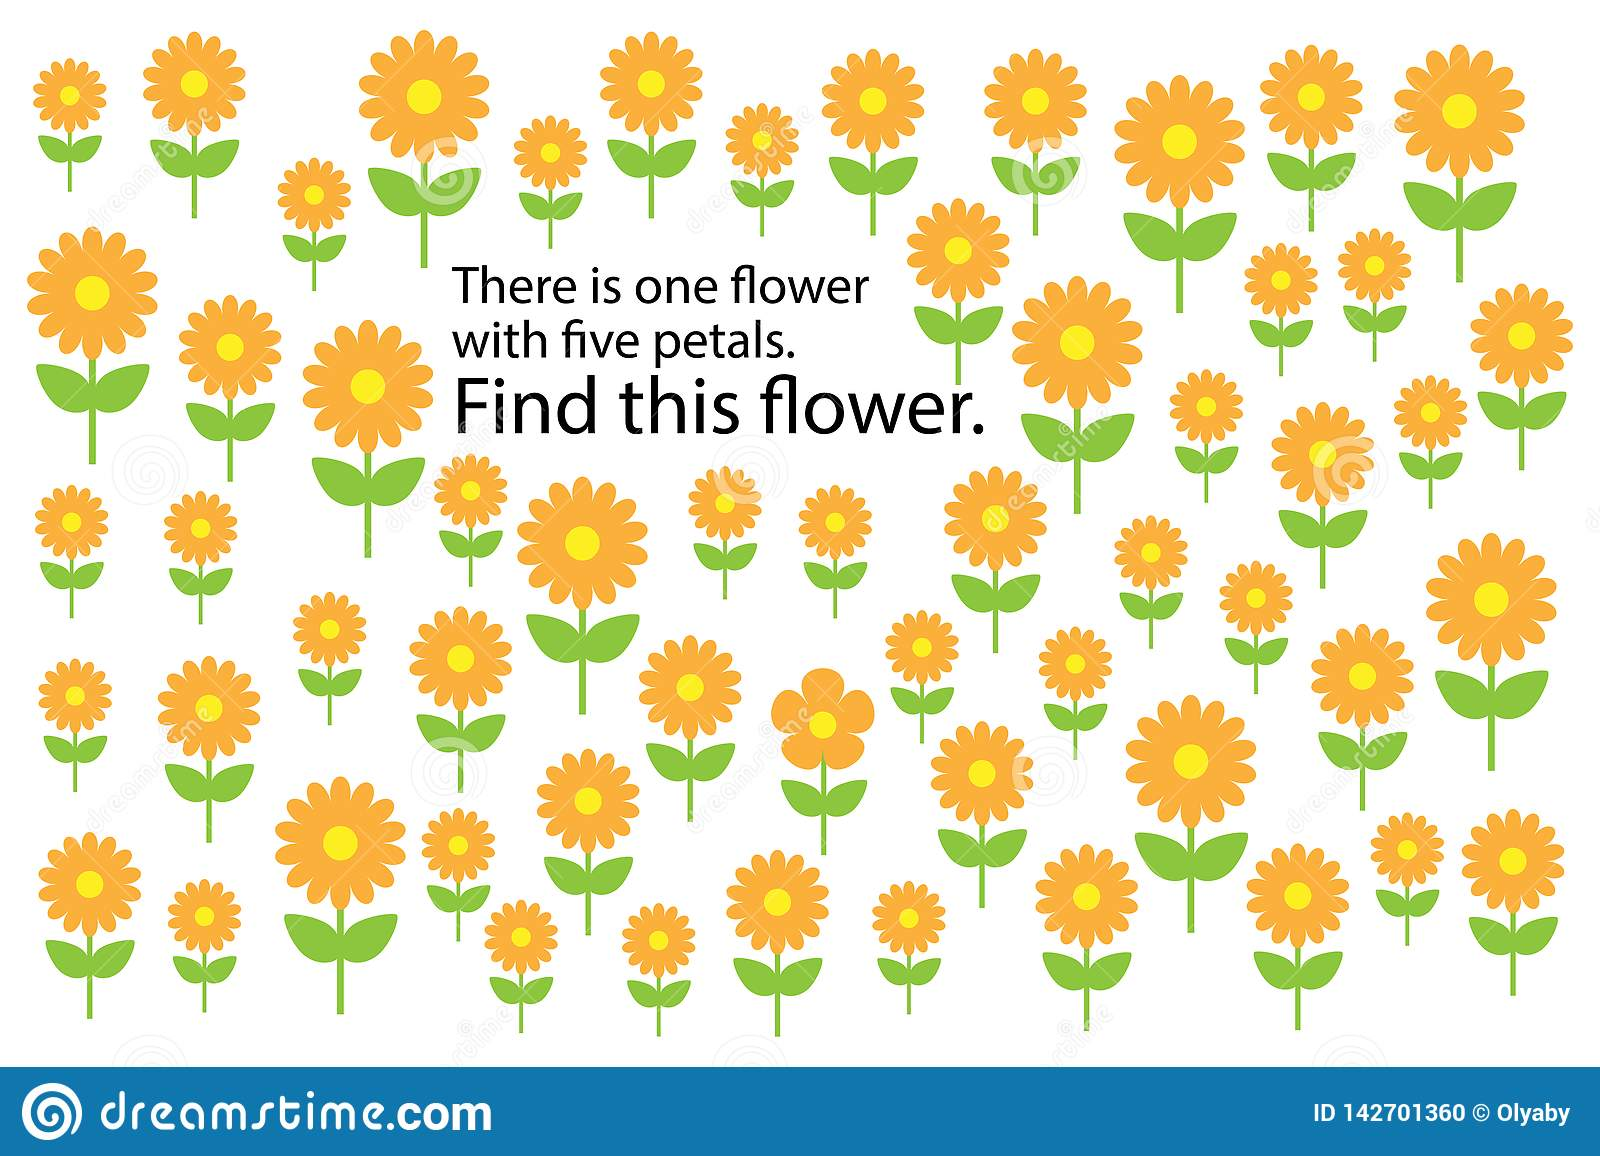 Find Flower With 5 Petals Spring Fun Education Puzzle